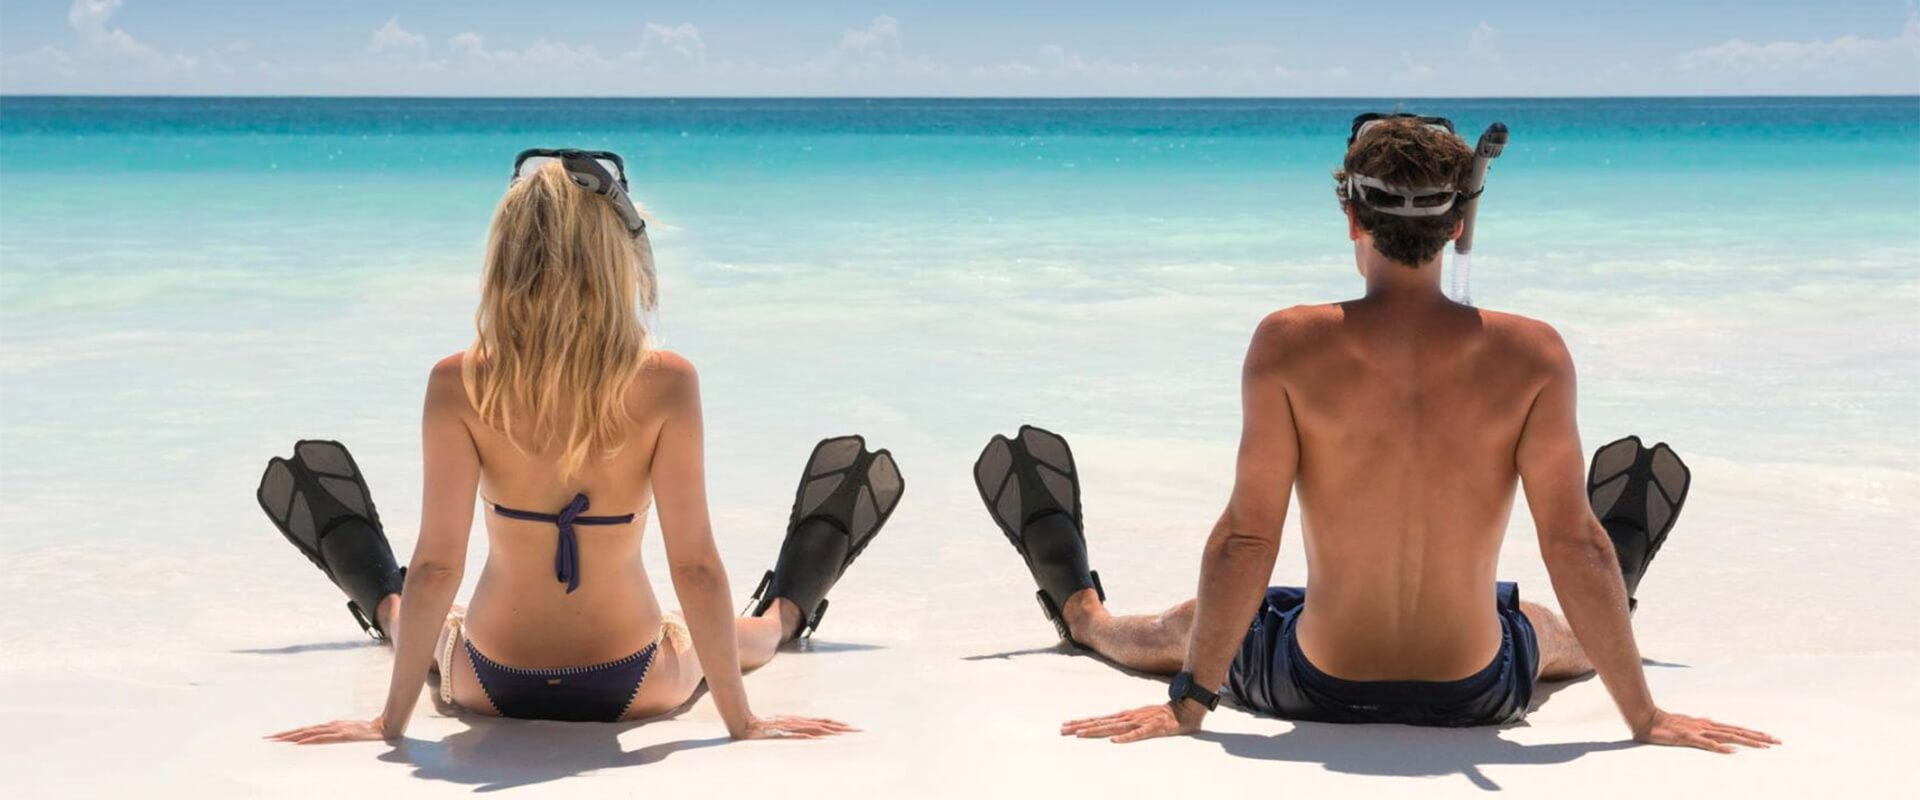 male and female snorklers sitting on beach looking at water